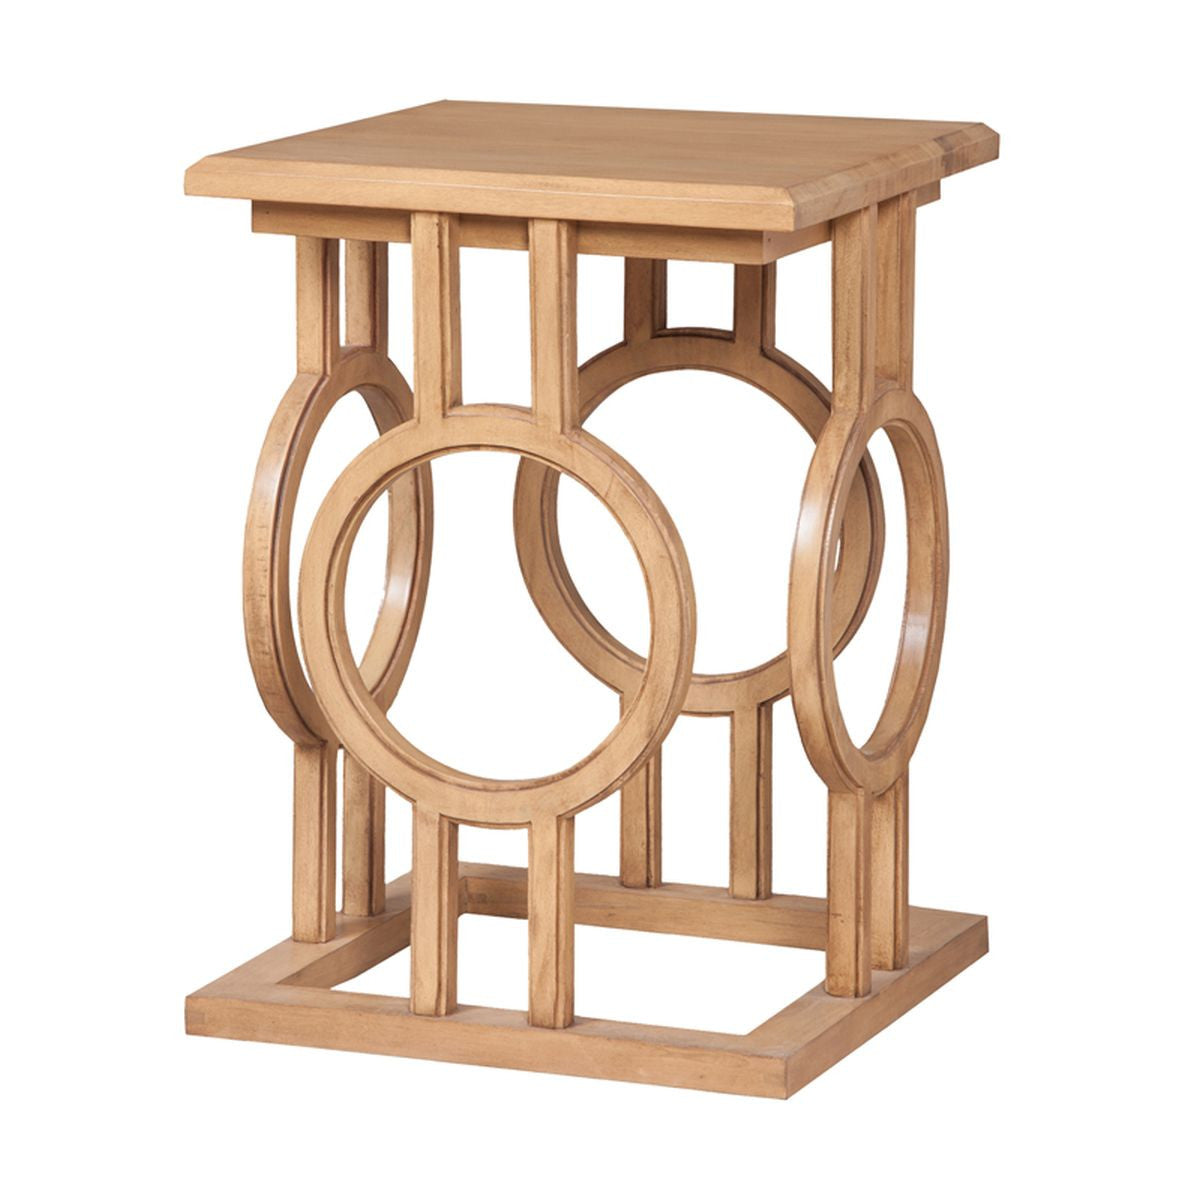 Circle Cut Out Accent Table design by Burke Decor Home